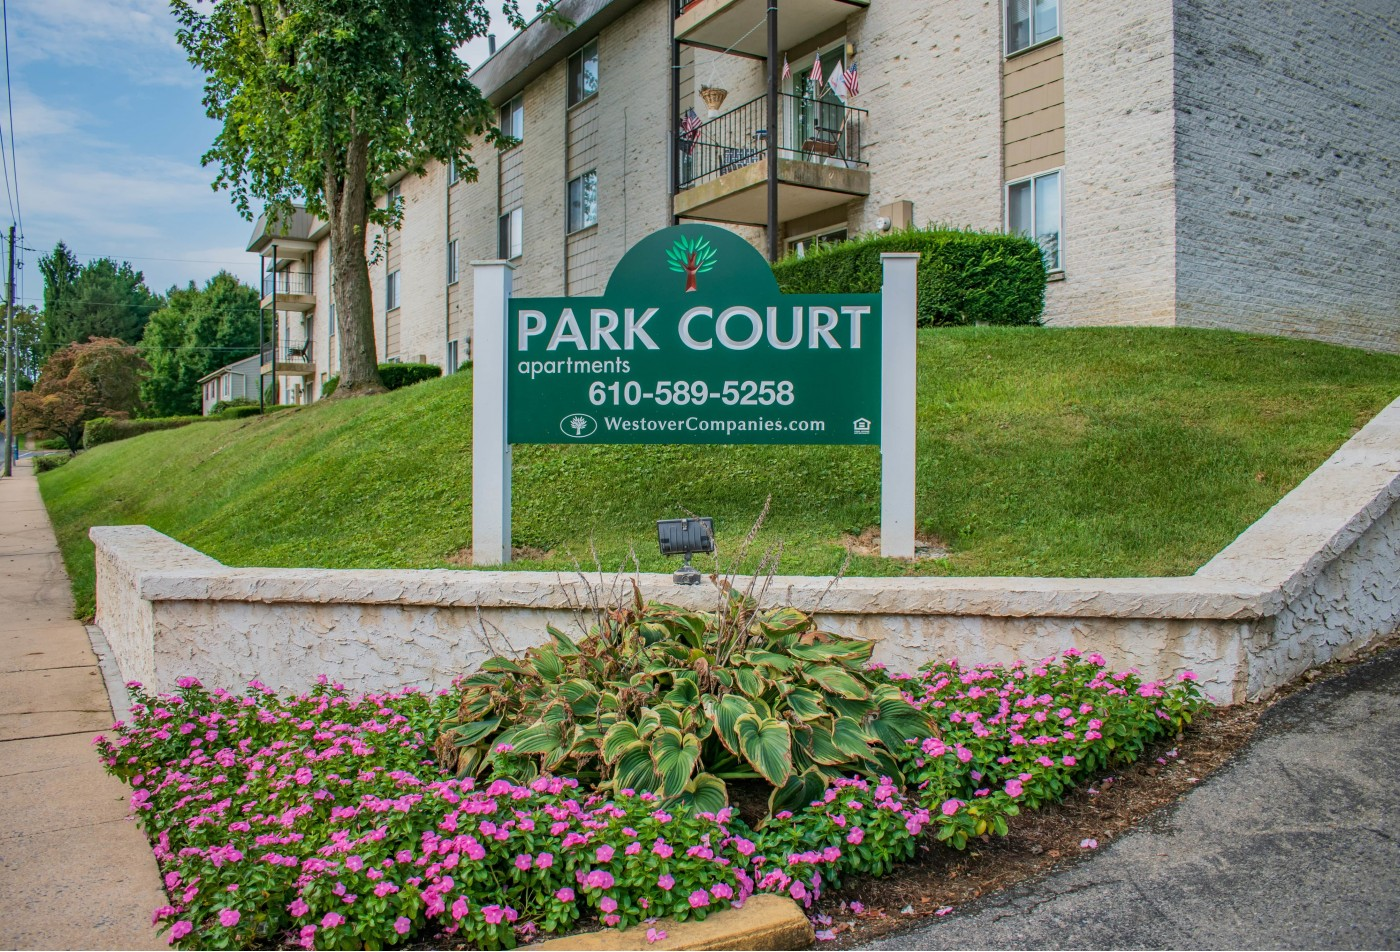 Apartments For Rent Berks County Pennsylvania | Park Court Apartments